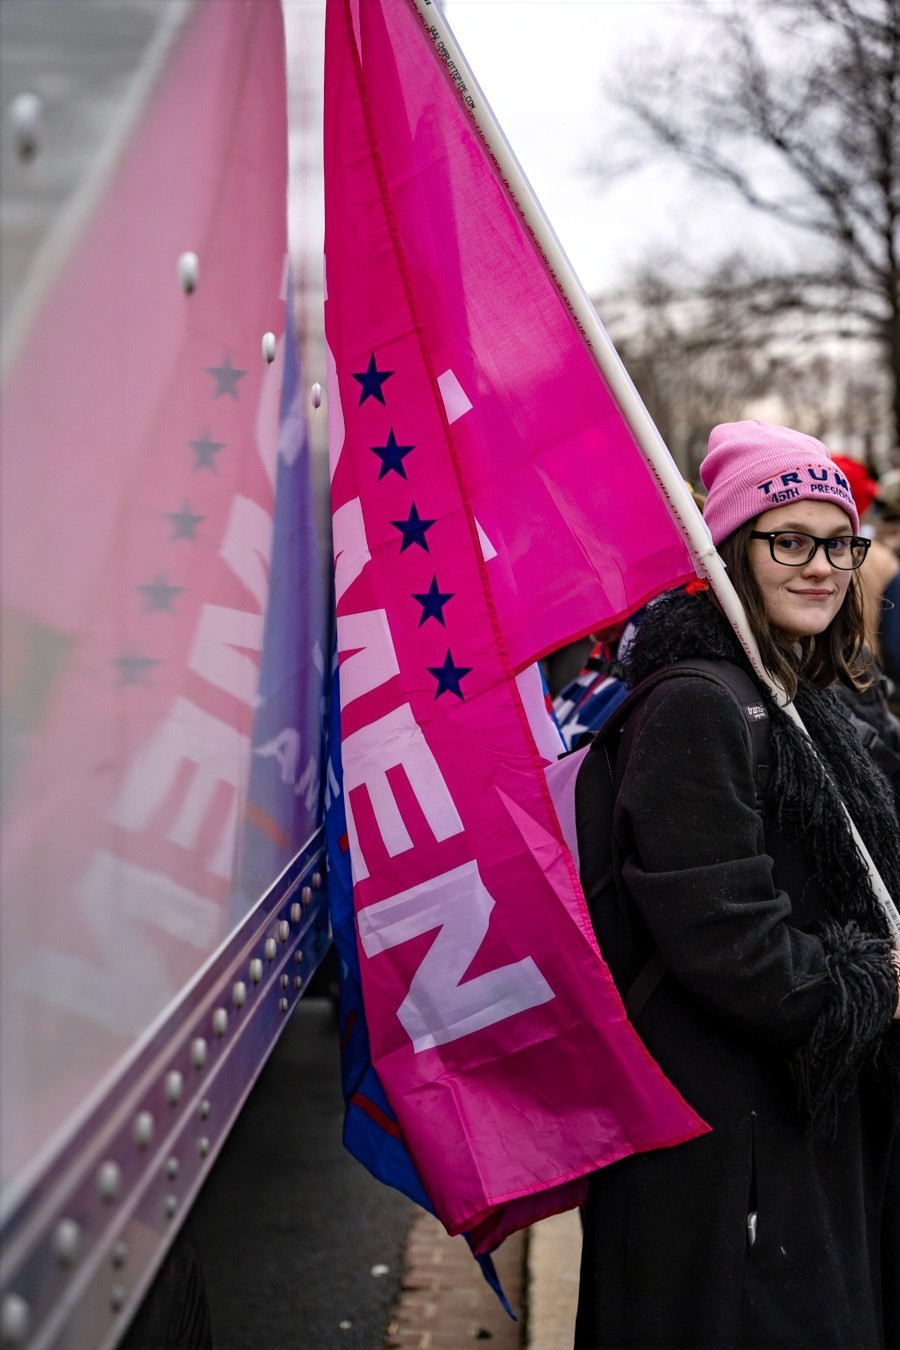 Trump supporter holding a Women for Trump Flag Tuesday, Jan. 5, 2021 in Washington, DC, in support of President Donald Trump. Photo: Julian Leshay